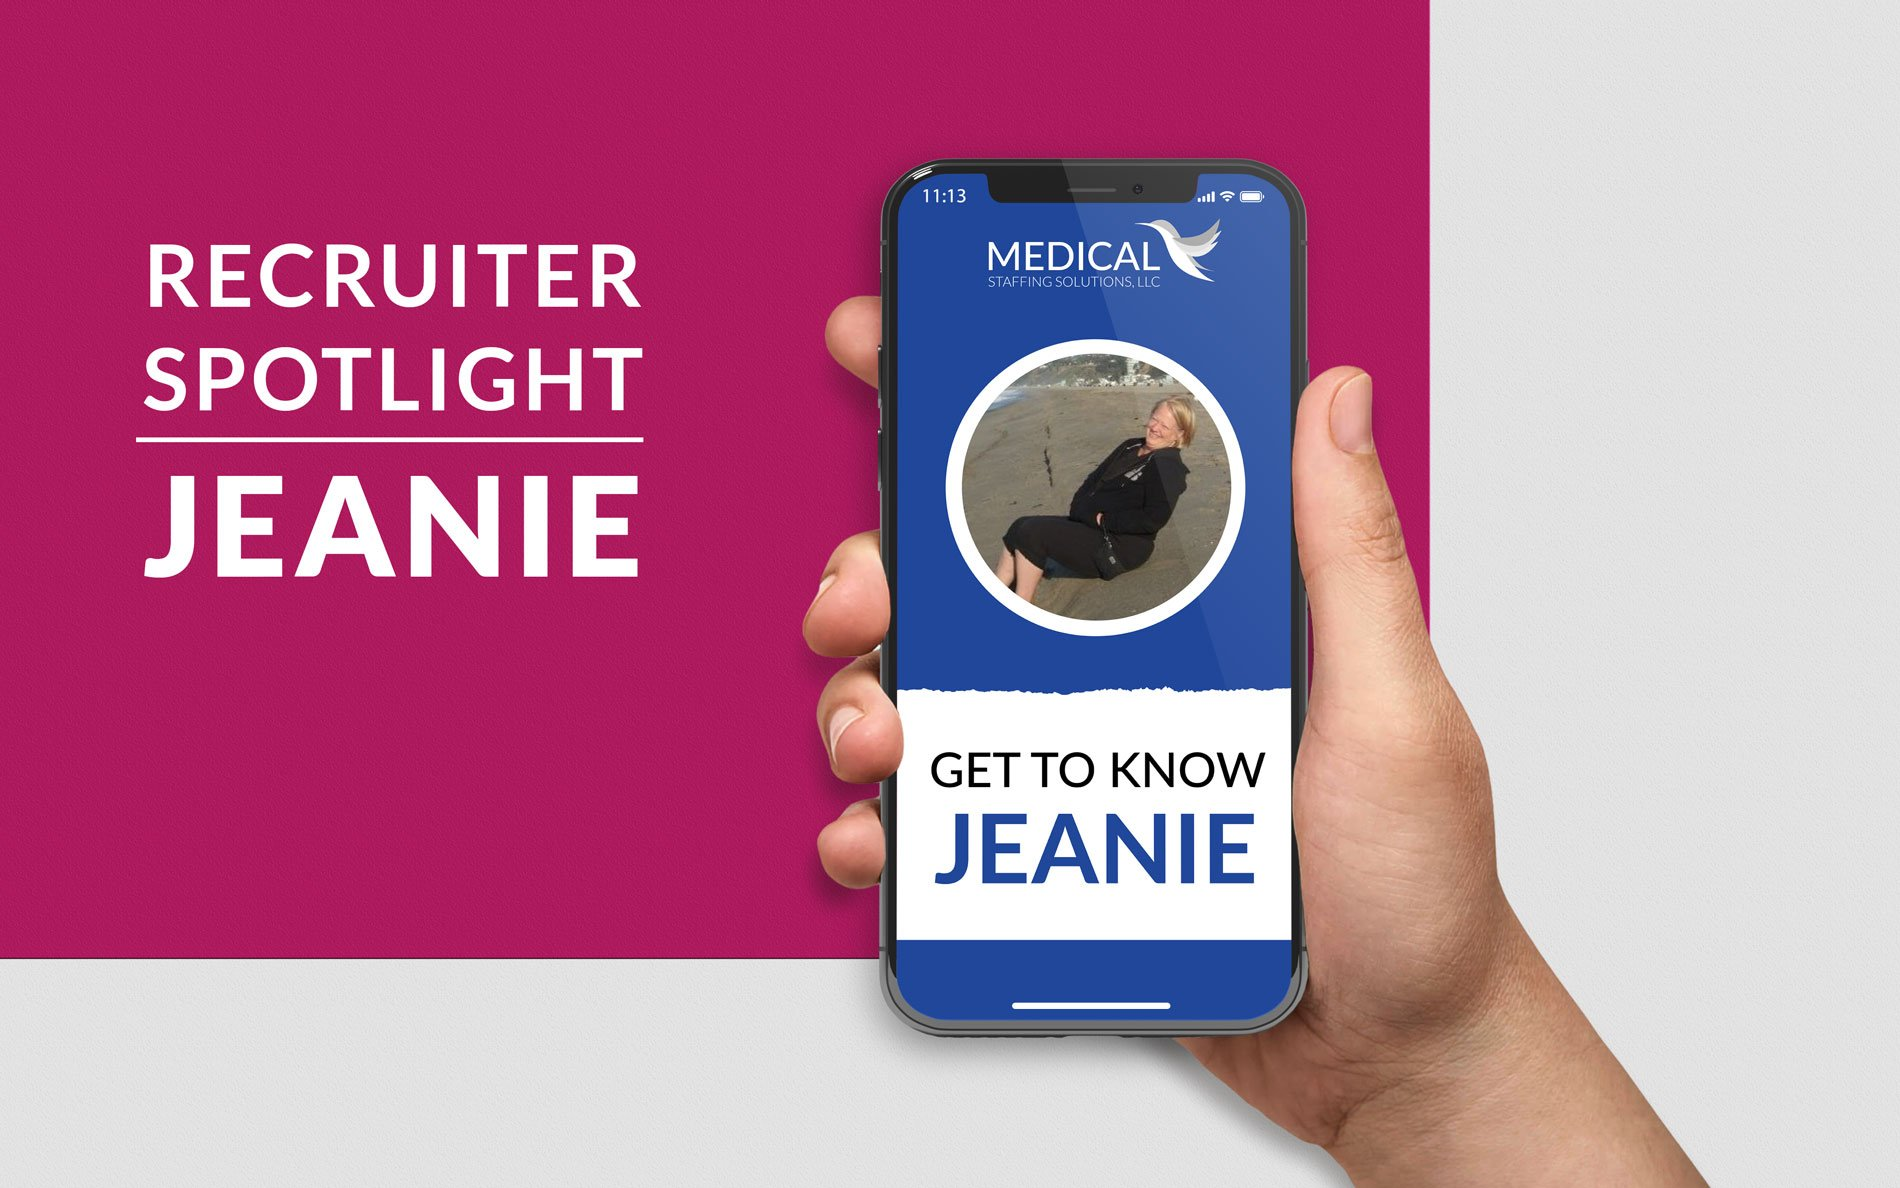 Recruiter Spotlight: Jeanie